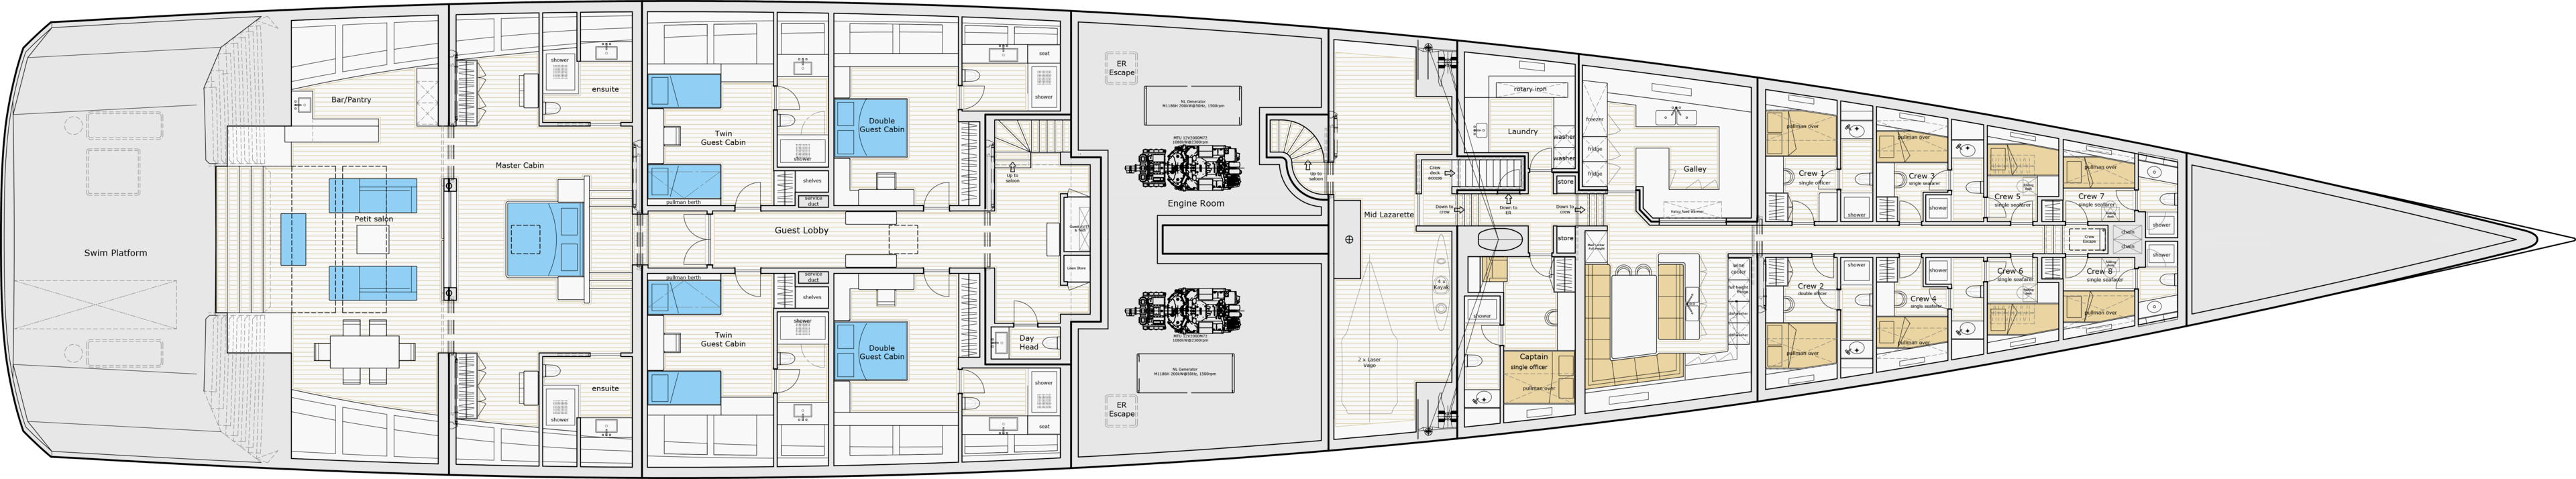 MMYD_055_72.5m_A_Accommodation Plan.png